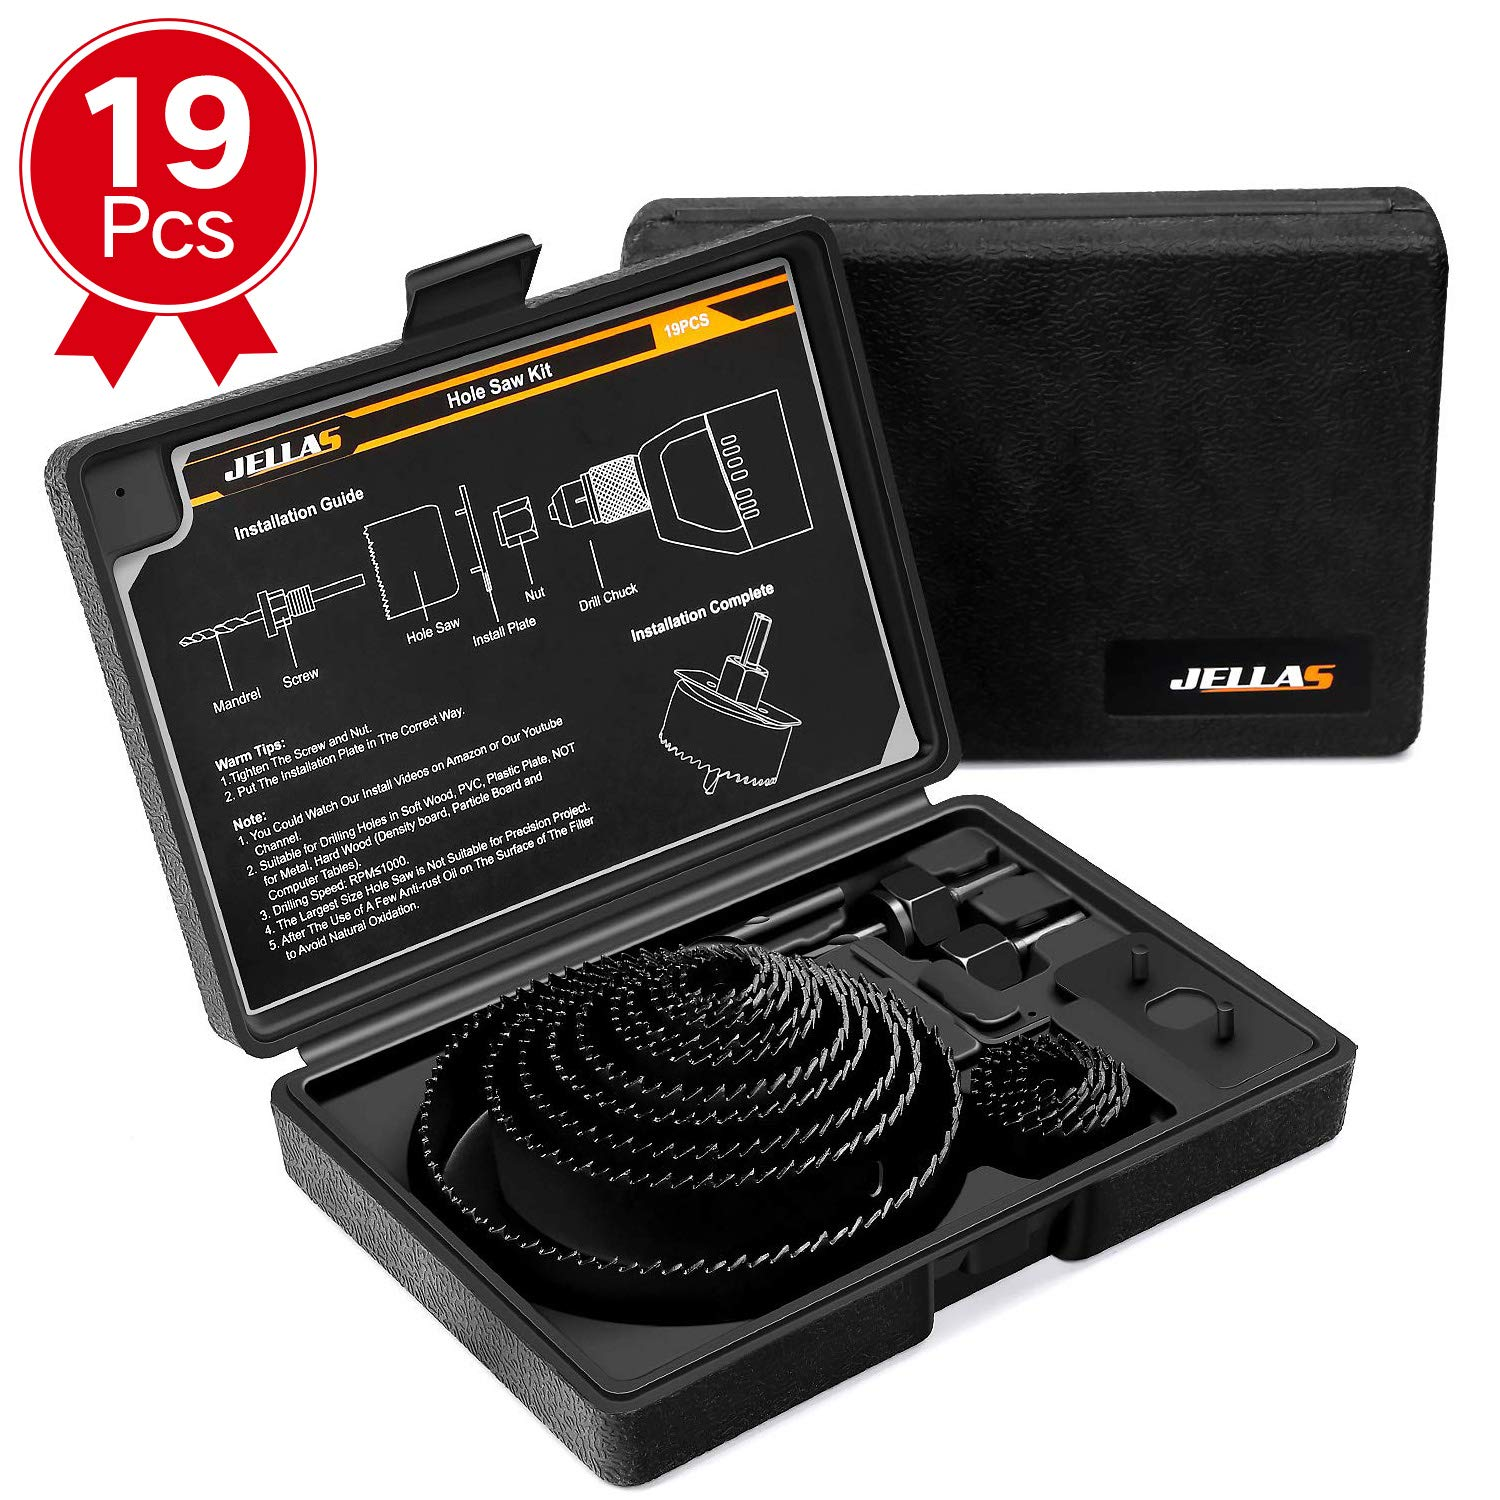 Hole Saw Kit, JELLAS 19Pcs 3/4''-5'' Holesaw set(Include 1'' and 1 3/8'') in Hard Box, 2 Mandrels, 1 Installation Plate, 1 Hex Key, Durable and Cut Precise Holes for Soft Wood, PVC Board and Plastic by Jellas